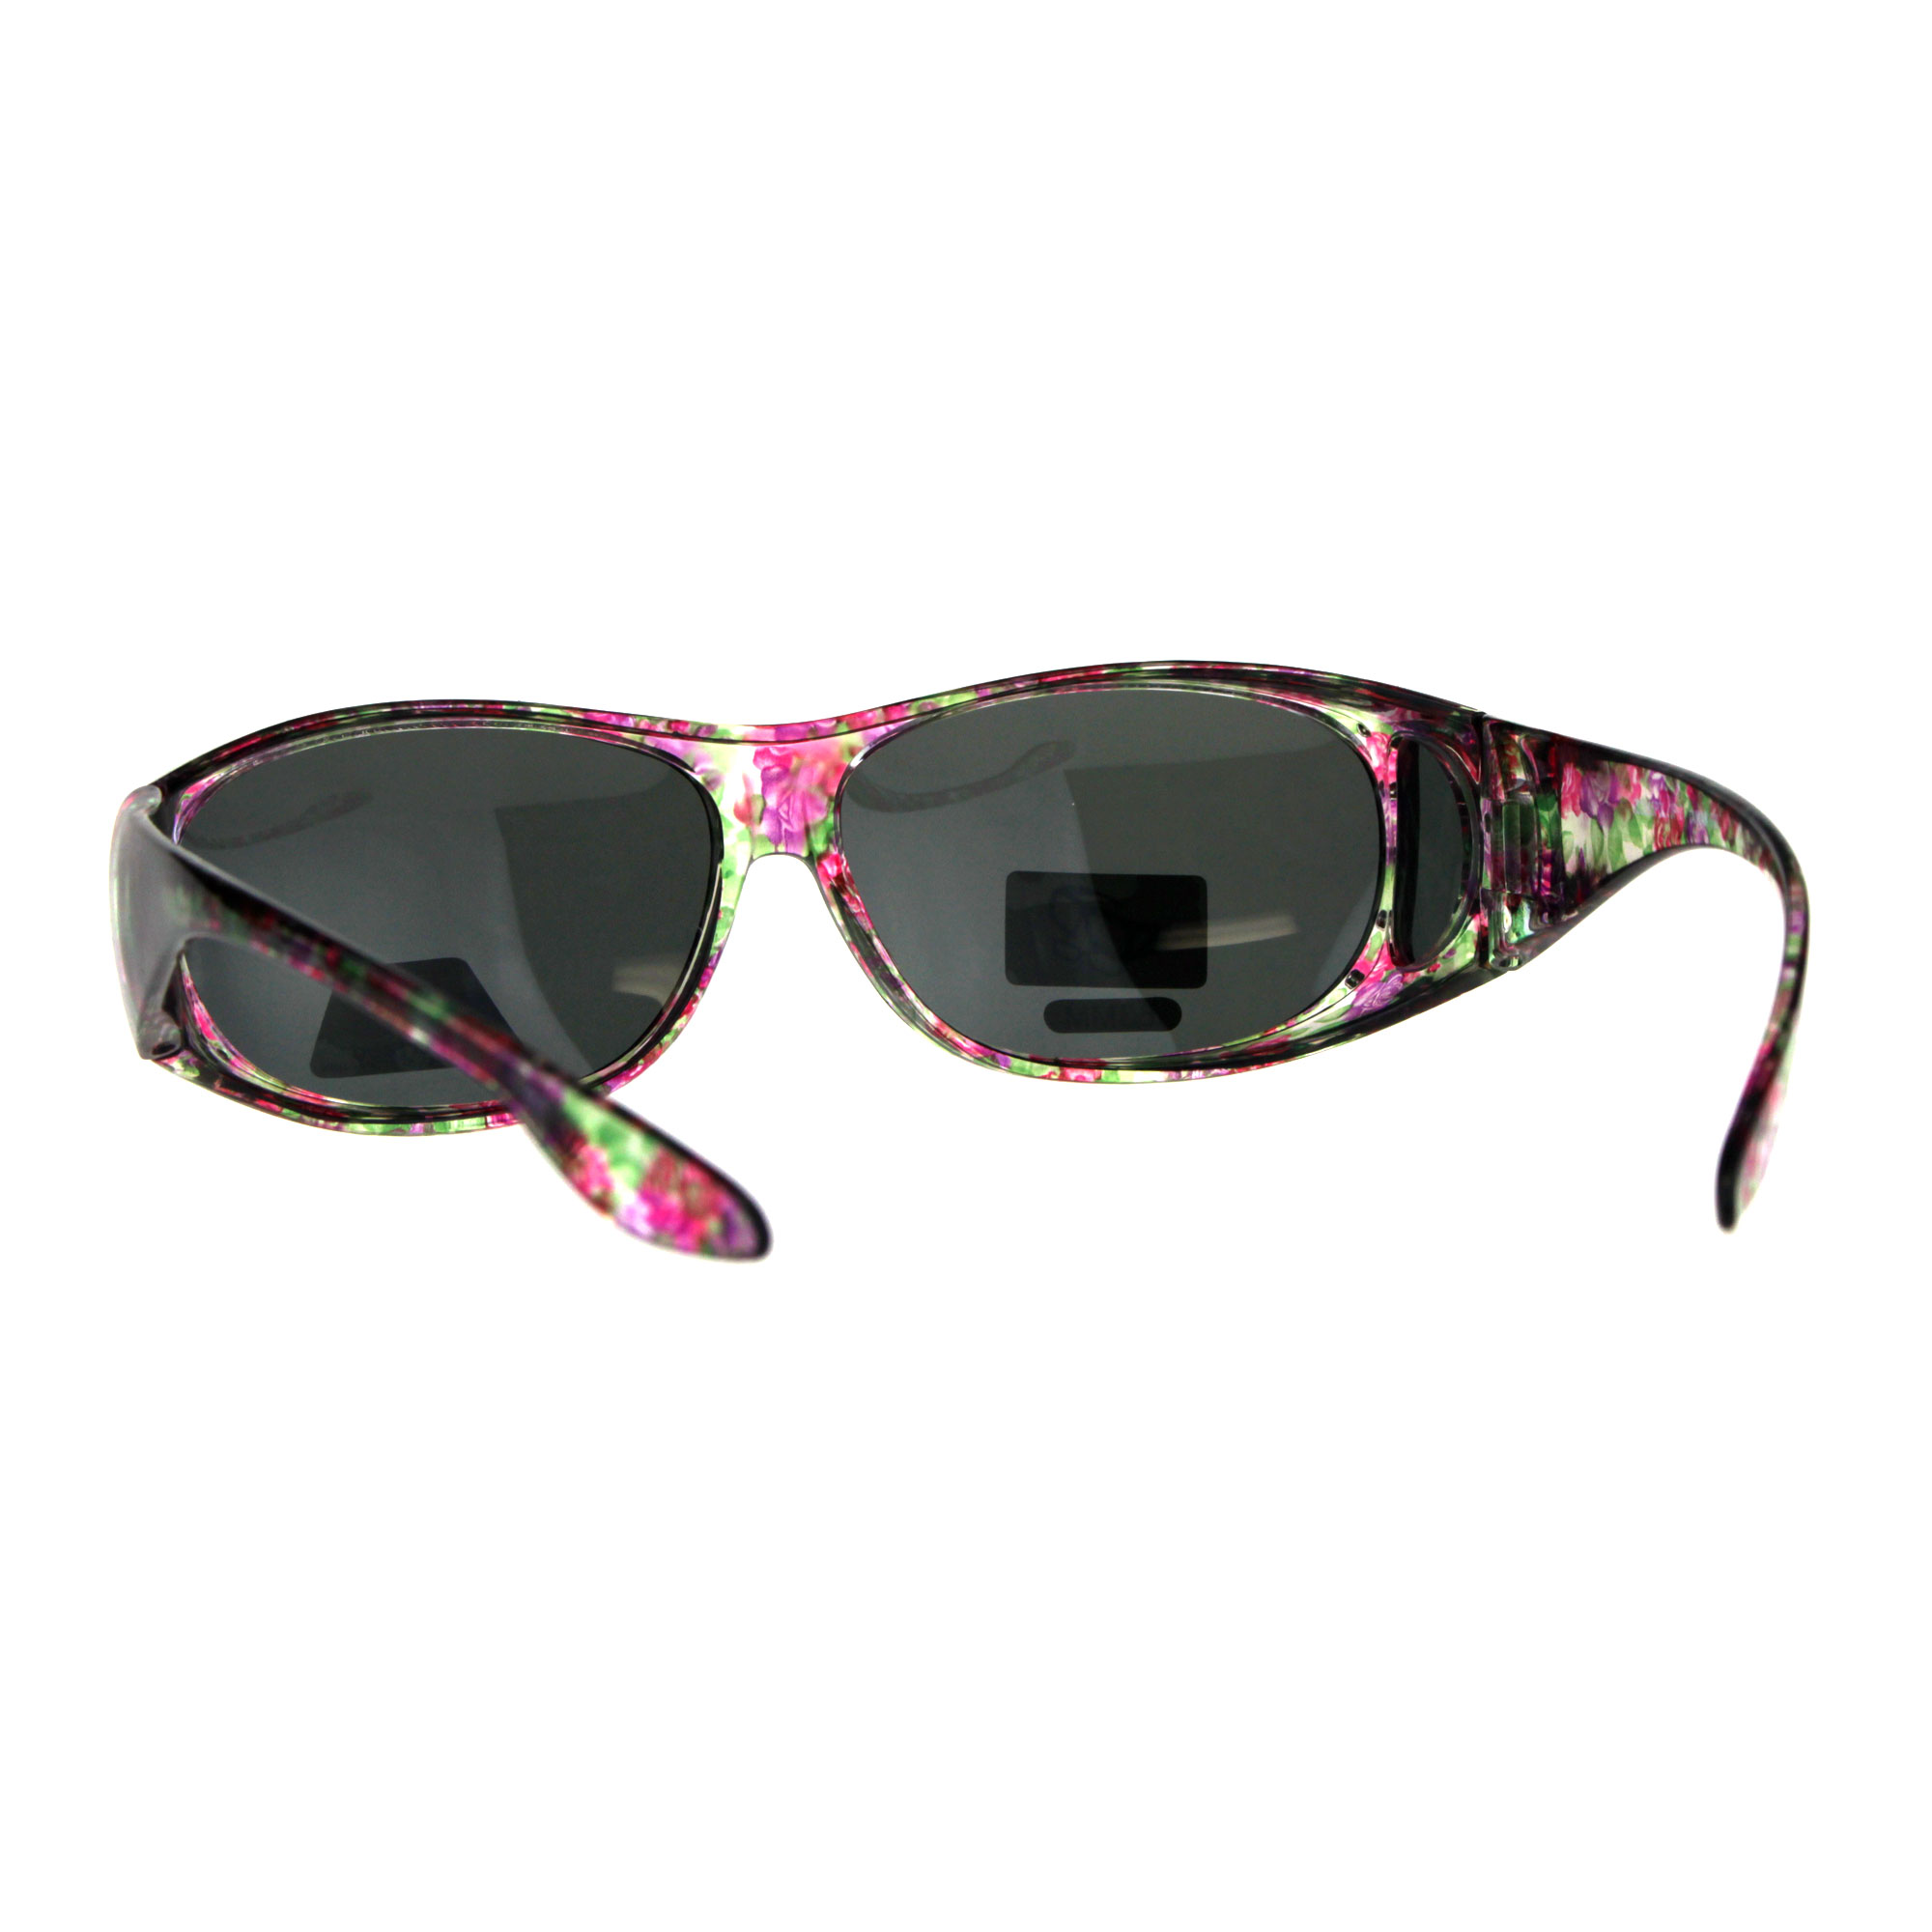 9c767d257e6 Polarized Womens Rhinestone Bling Fit Over Floral Print 63mm ...